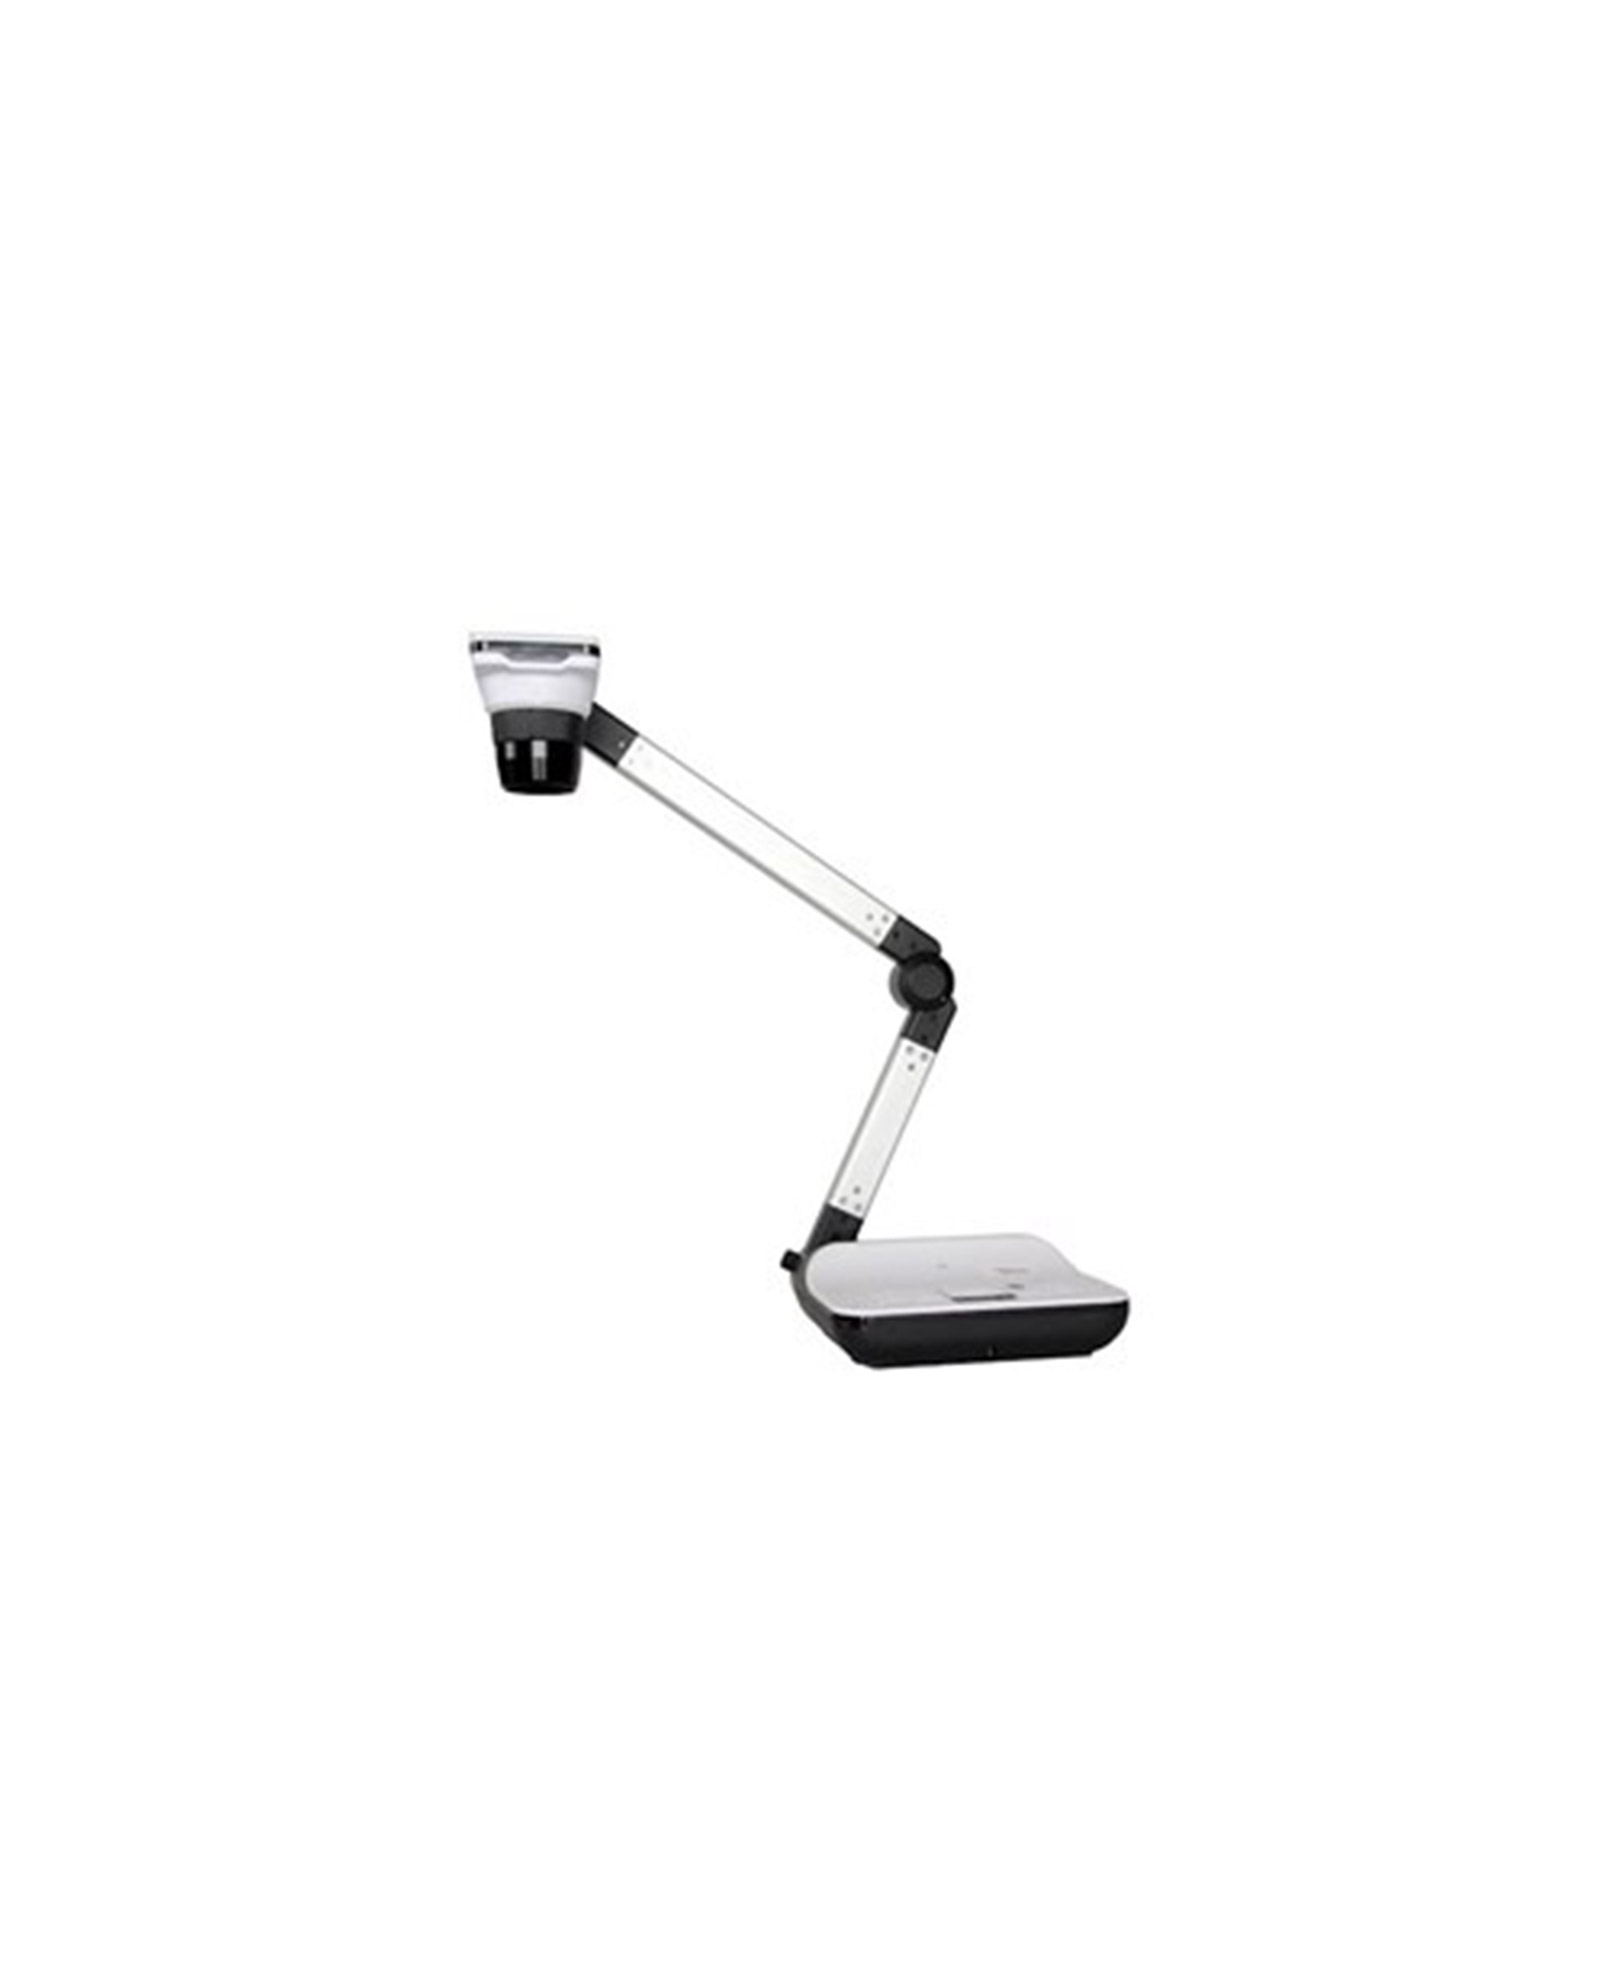 Optoma Dc554 Document Camera, 13mp 4k With Stand